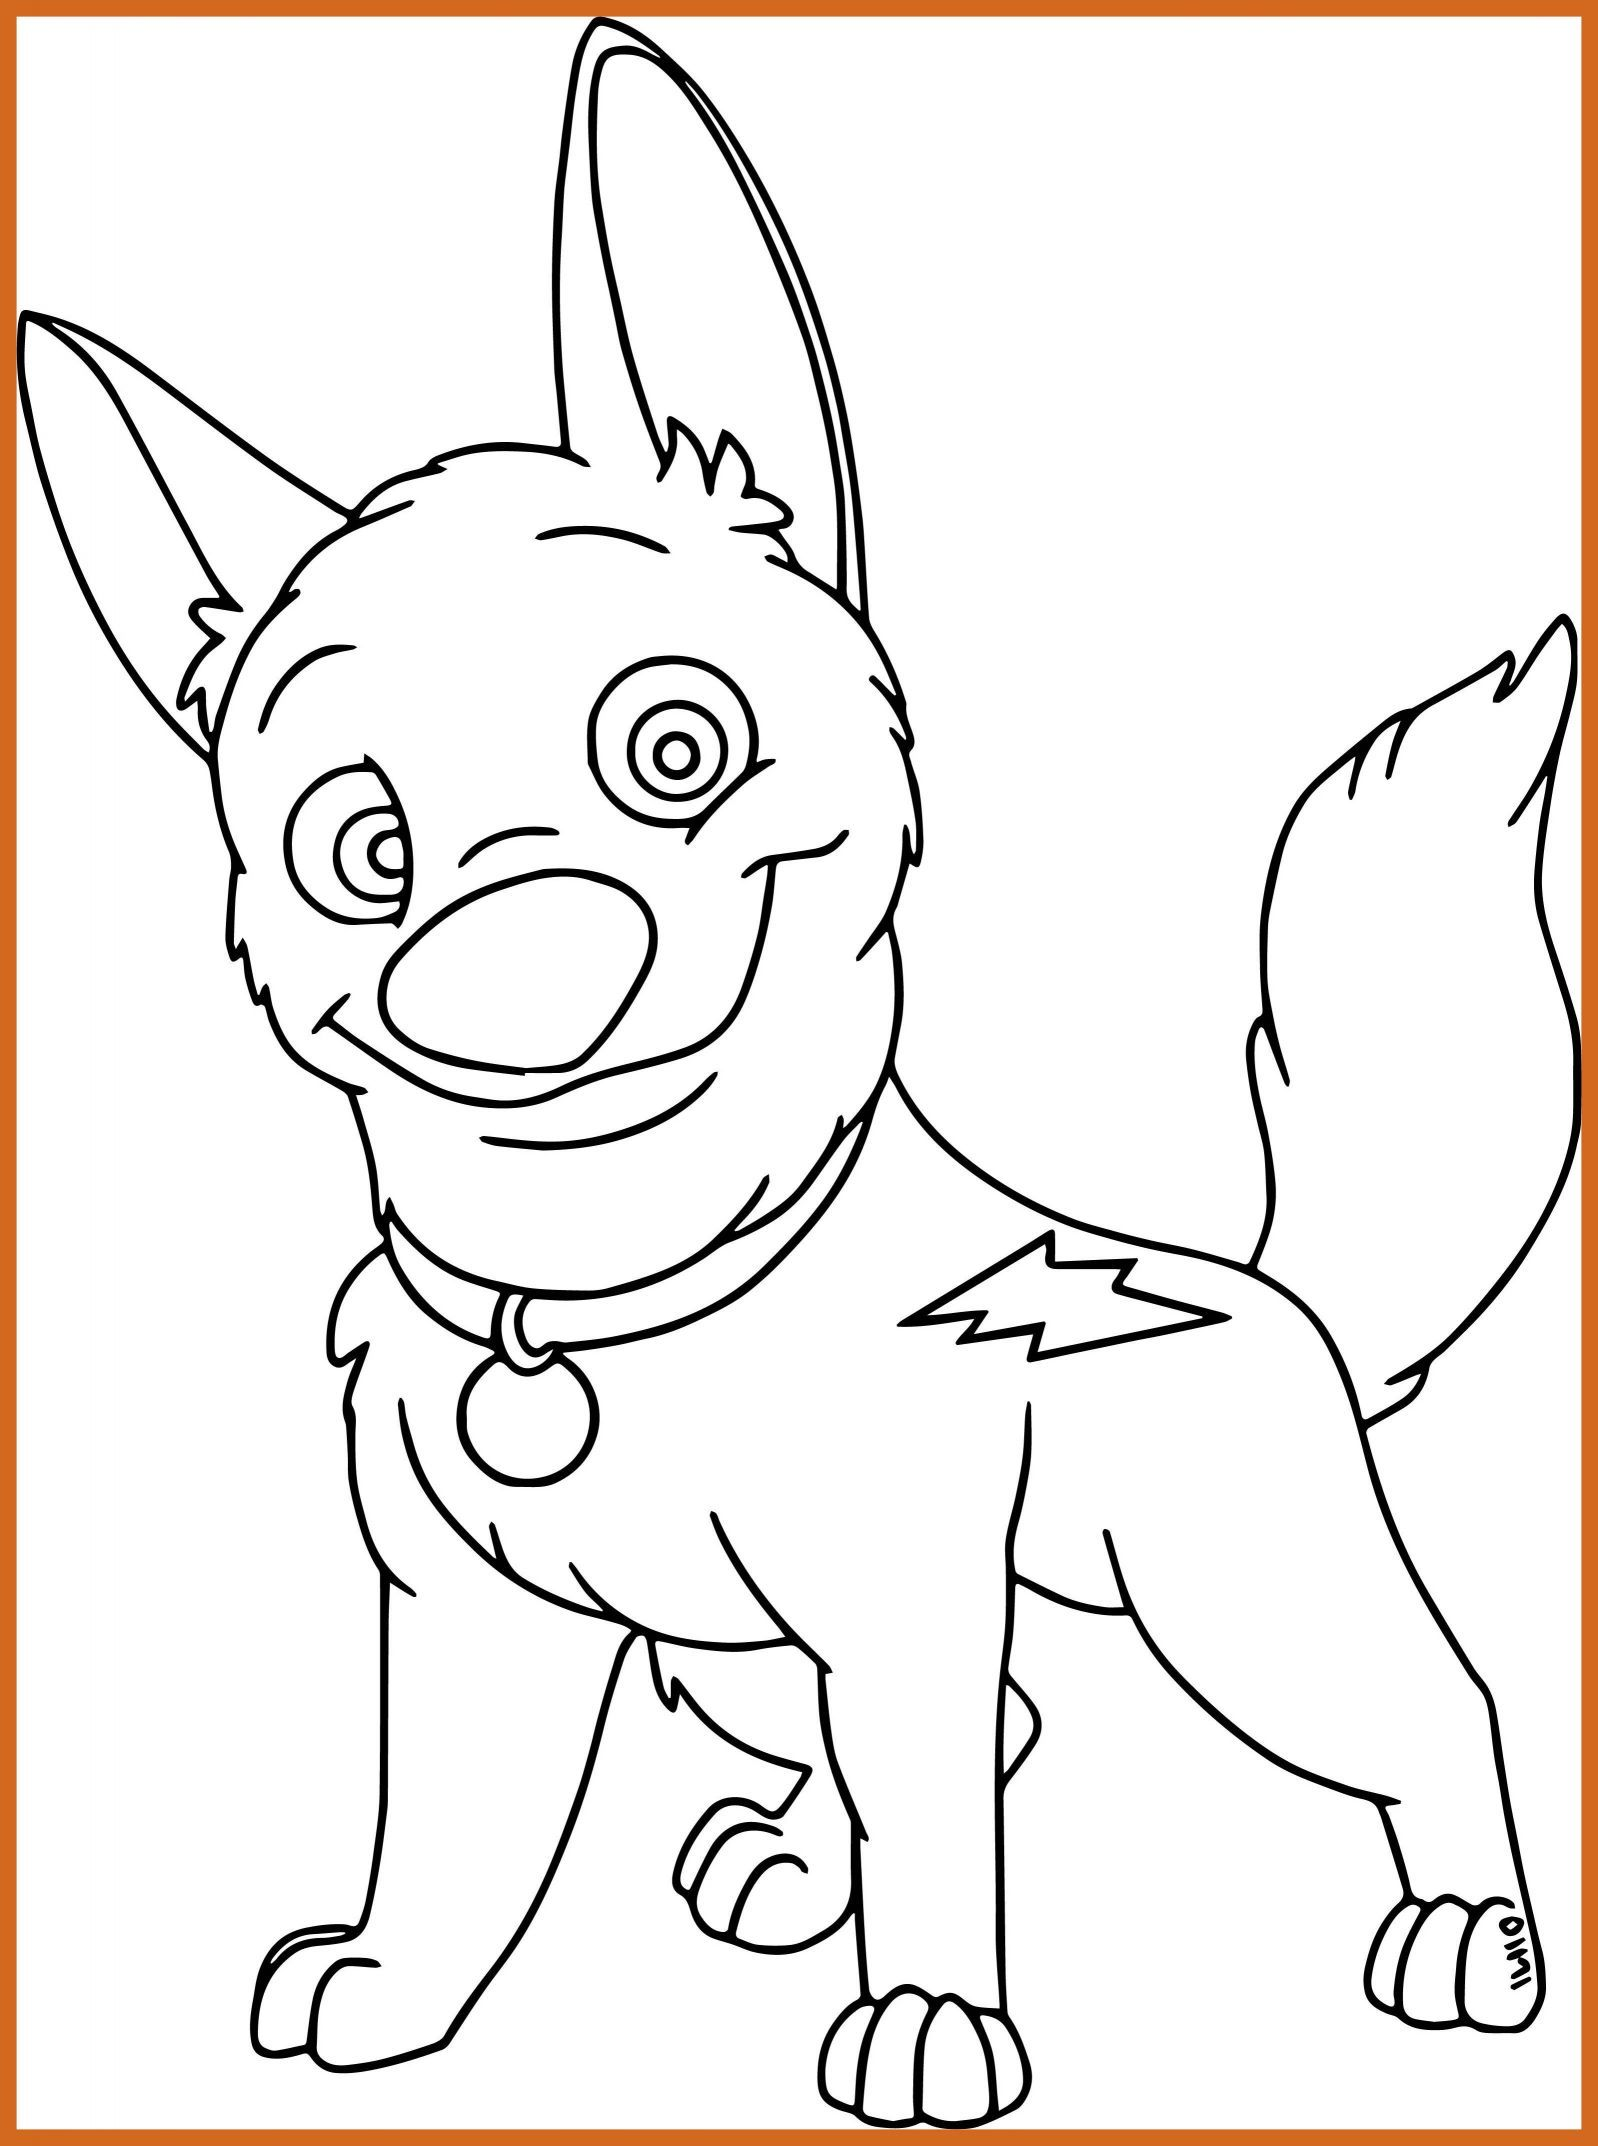 1598x2146 Amazing Cute Bolt Dog Coloring Pages Wecoloringpage For Puppy